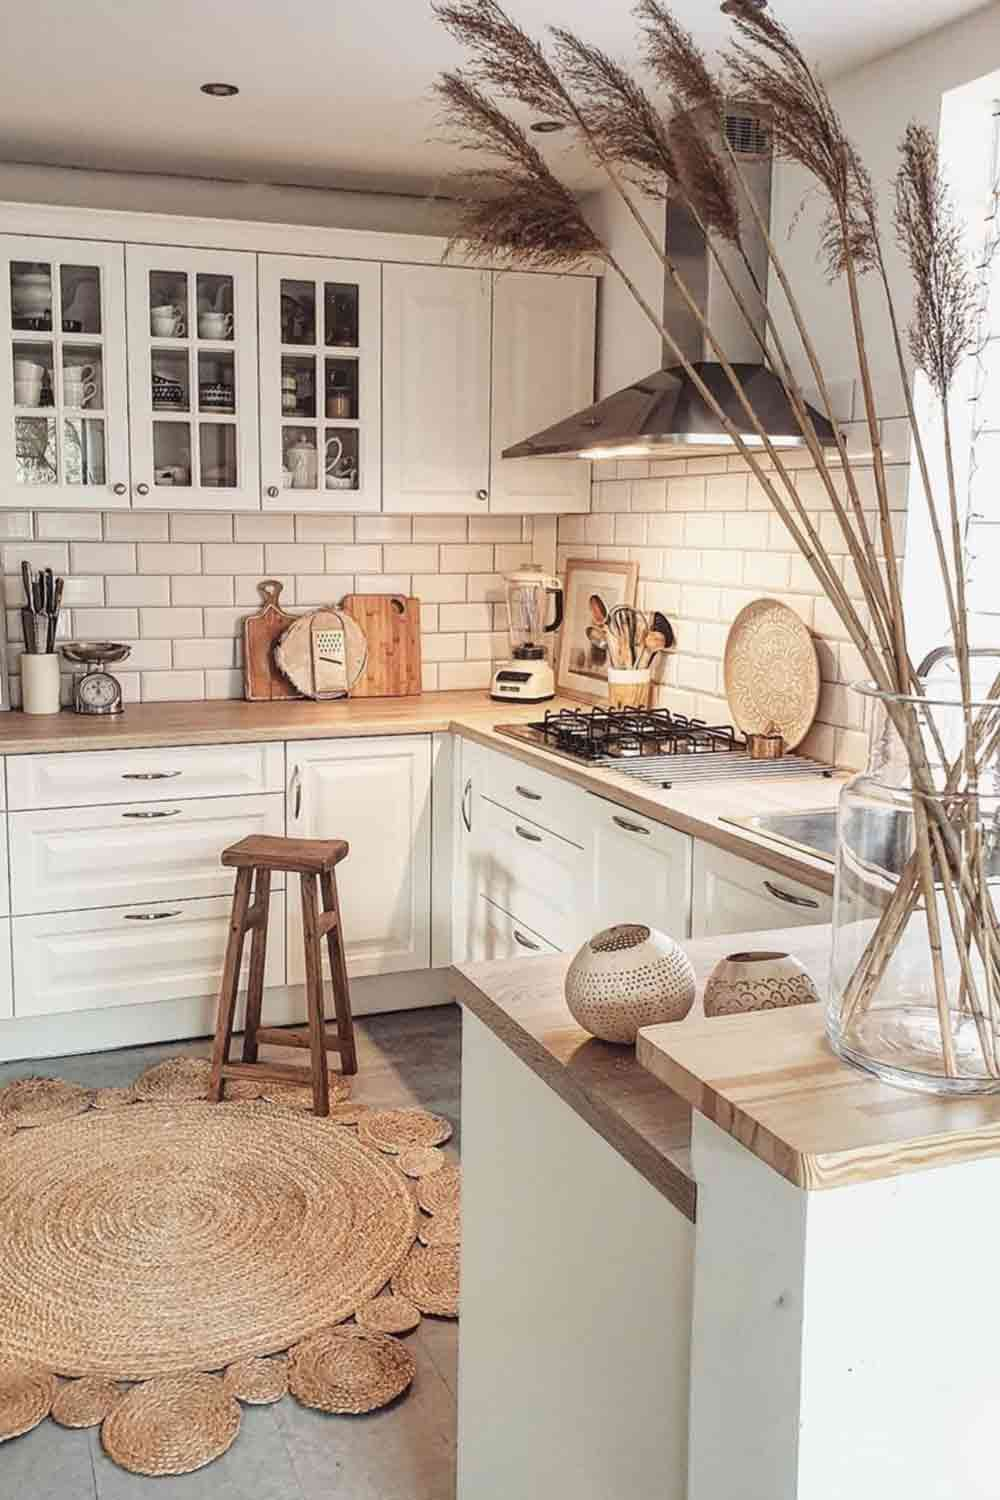 33 Kitchen Ideas You Should Use While Decorating The Room